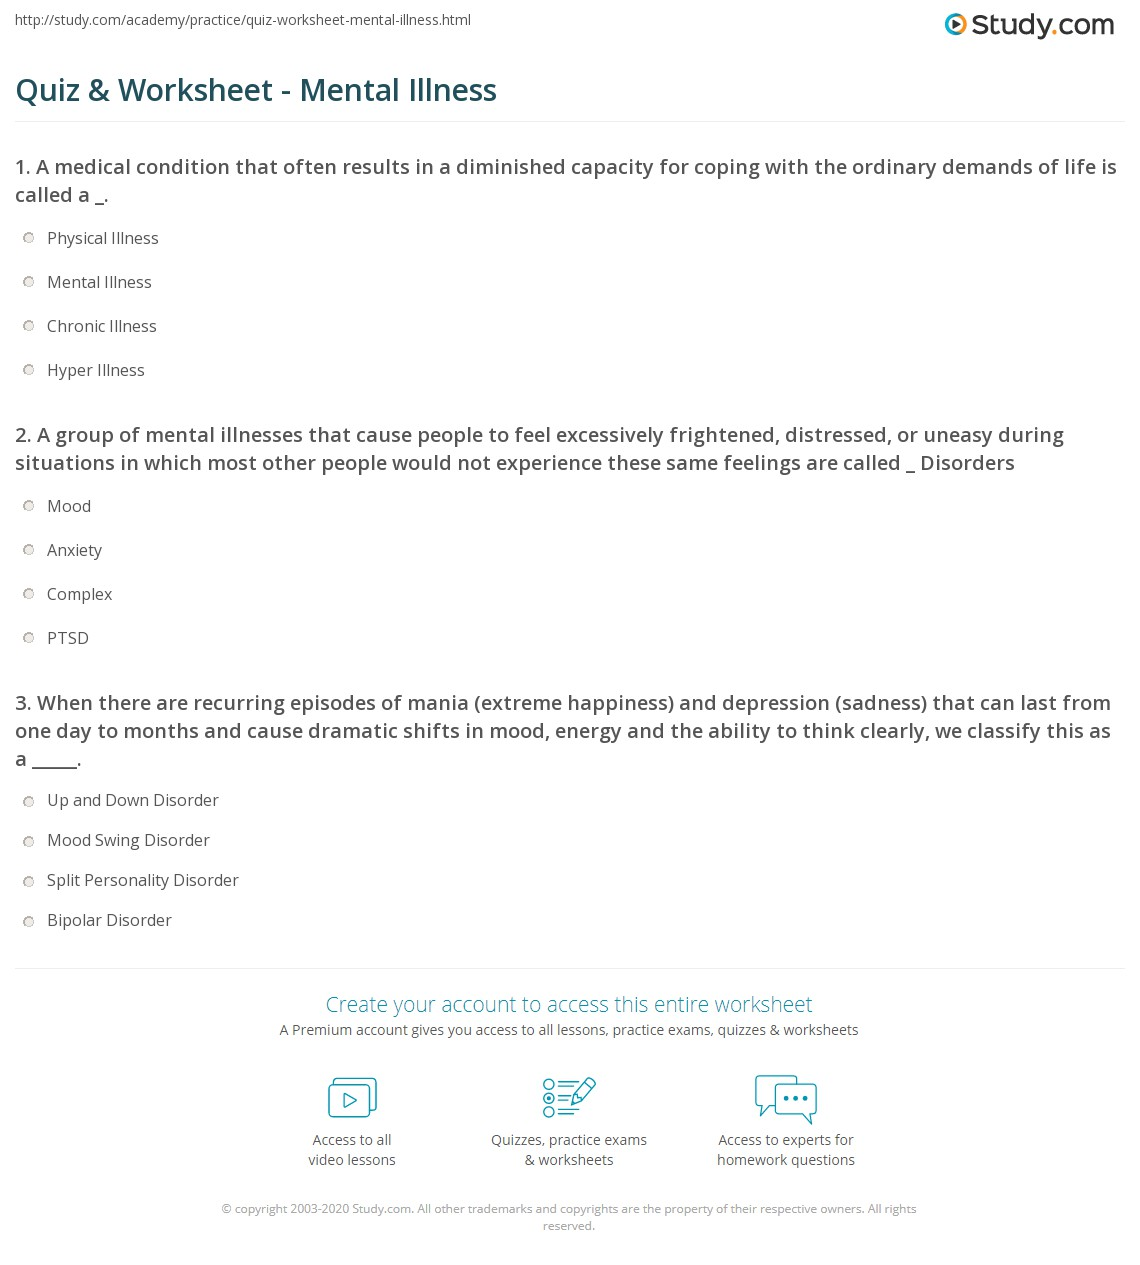 worksheet Mental Illness Worksheets quiz worksheet mental illness study com a group of illnesses that cause people to feel excessively frightened distressed or uneasy during situations in which most other would n